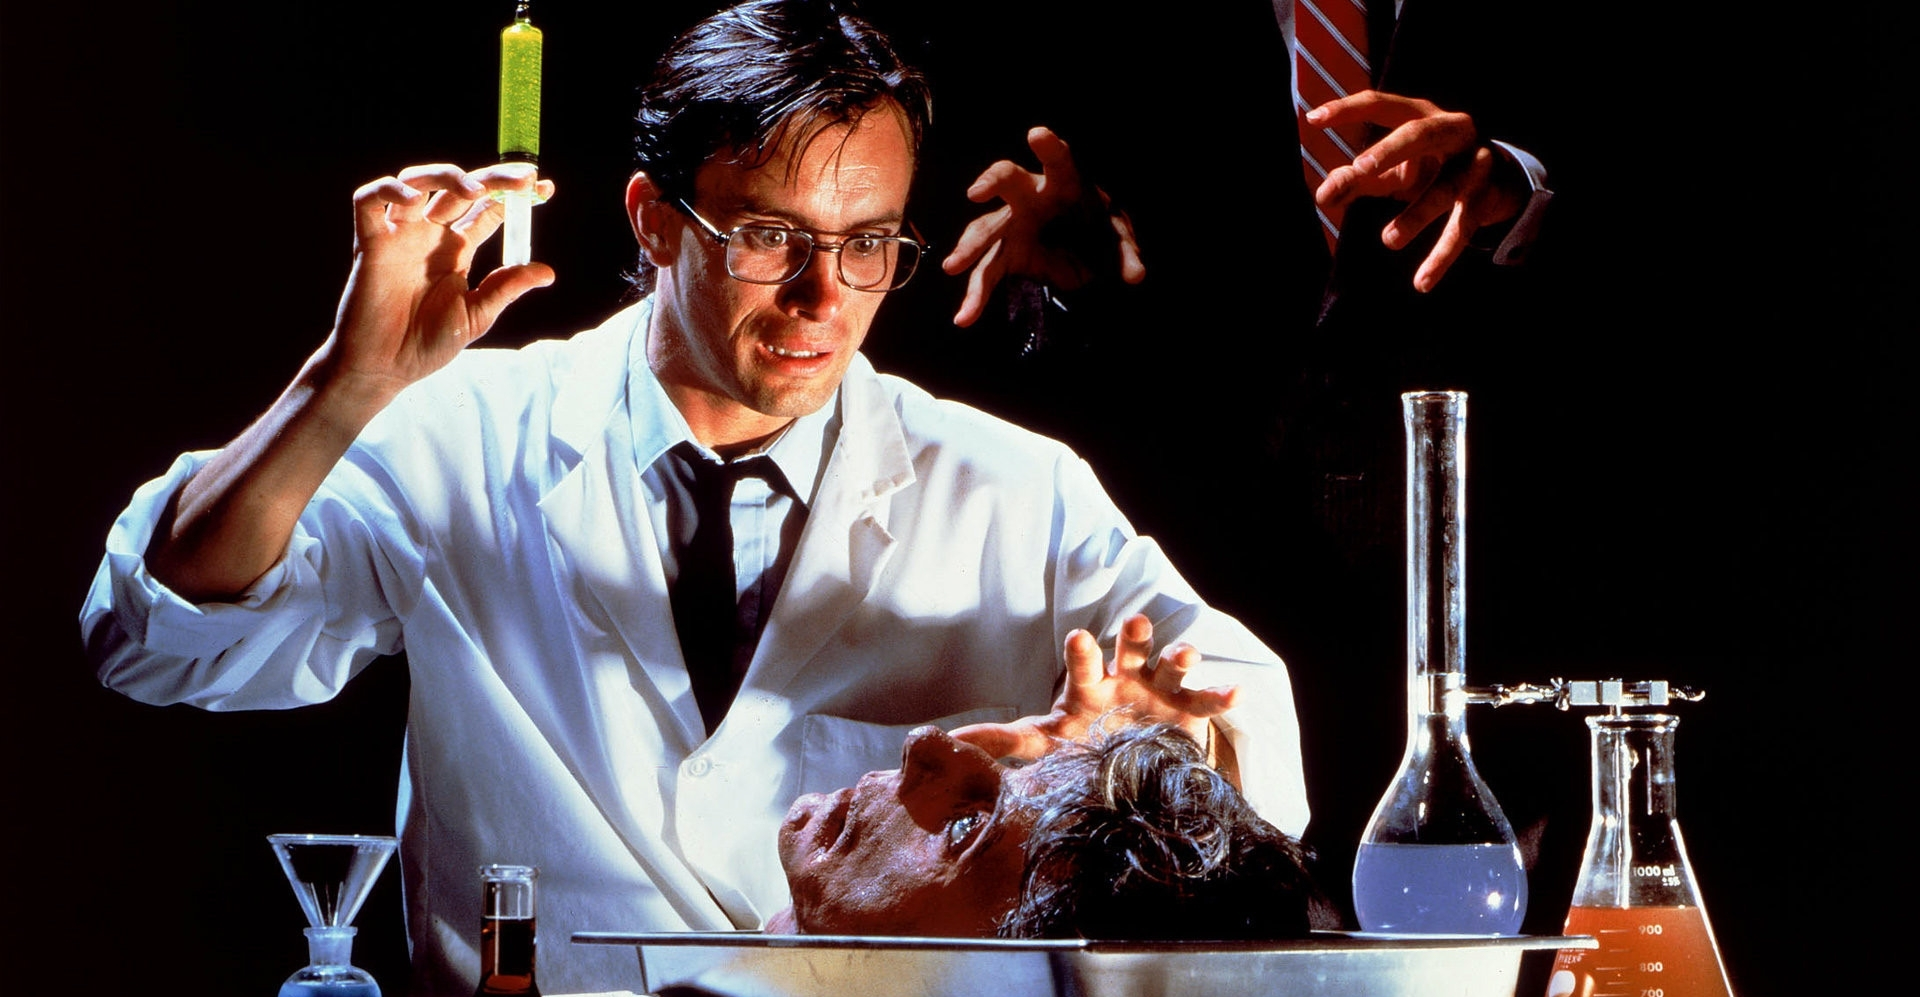 re-animator, herbert west, lovecraft